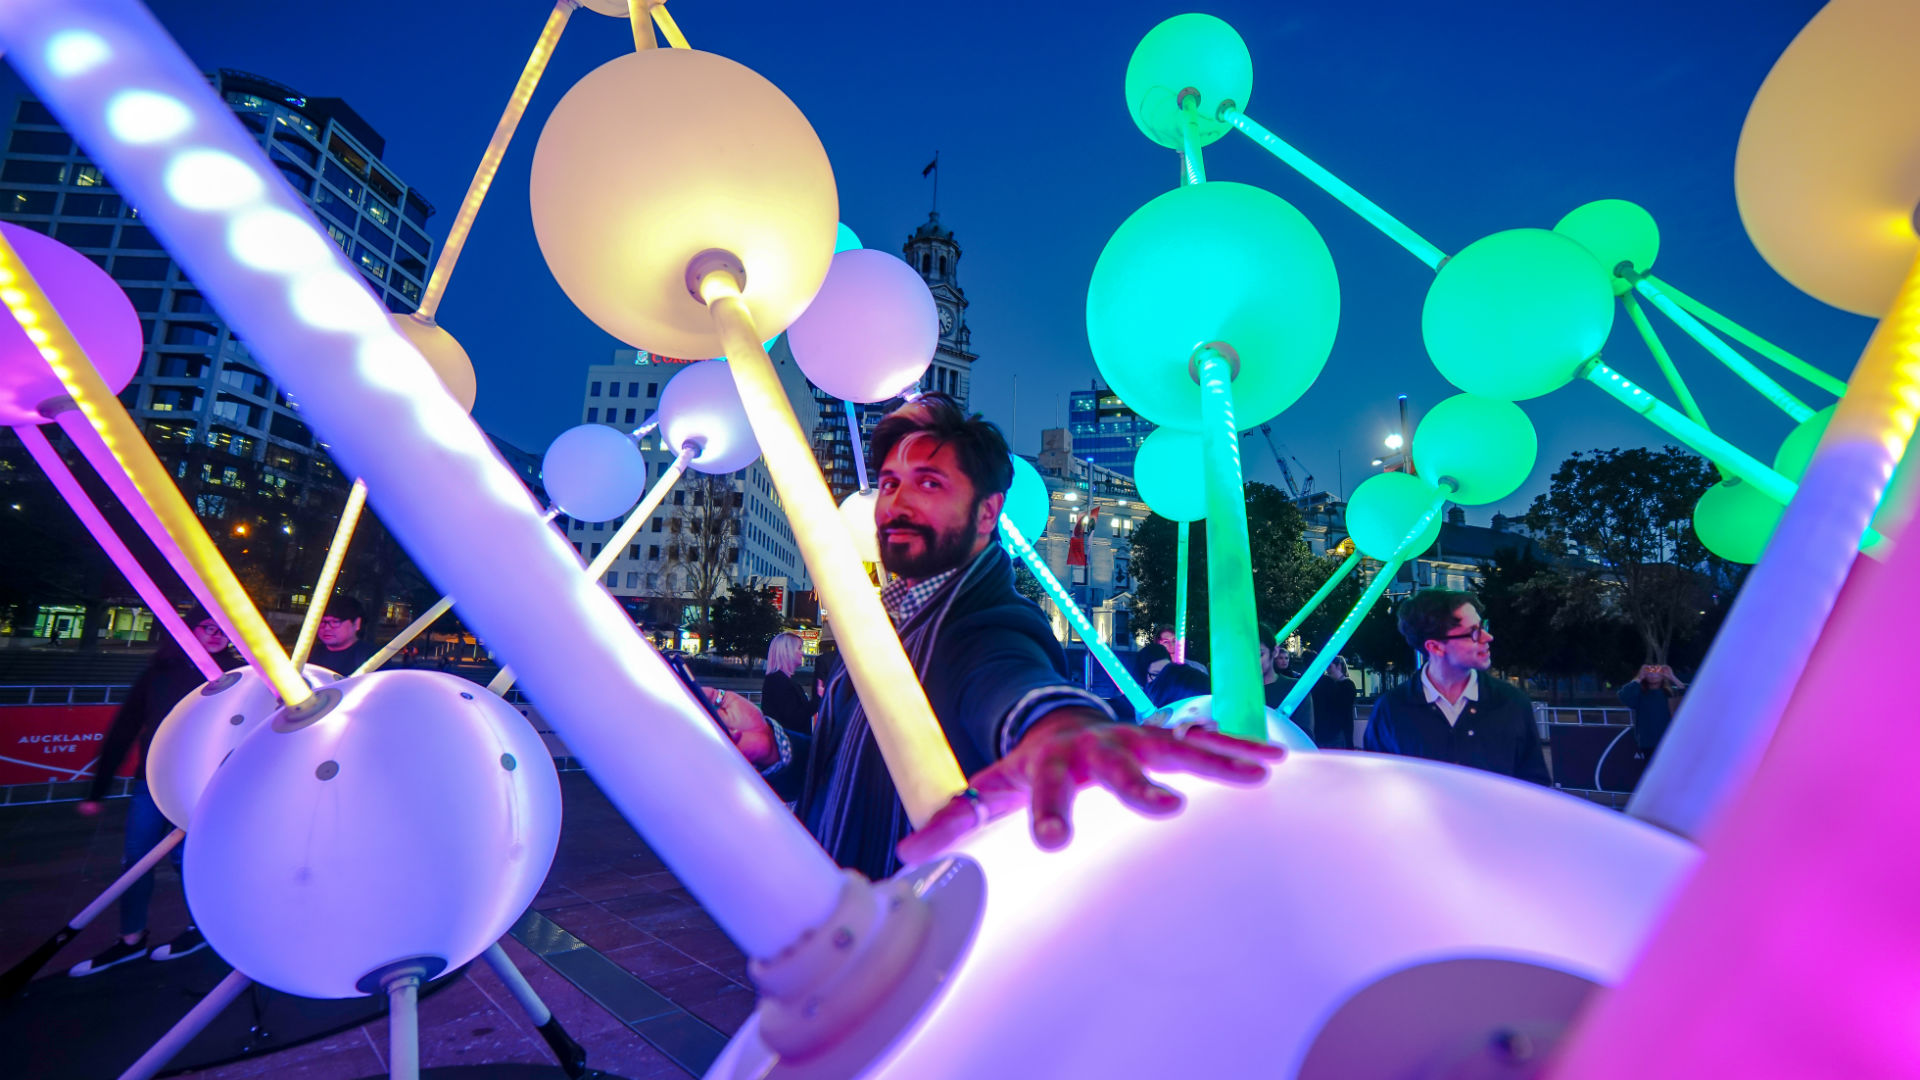 A man standing among colourfully lit orbs during the Winter Lights Festival at Canary Wharf.